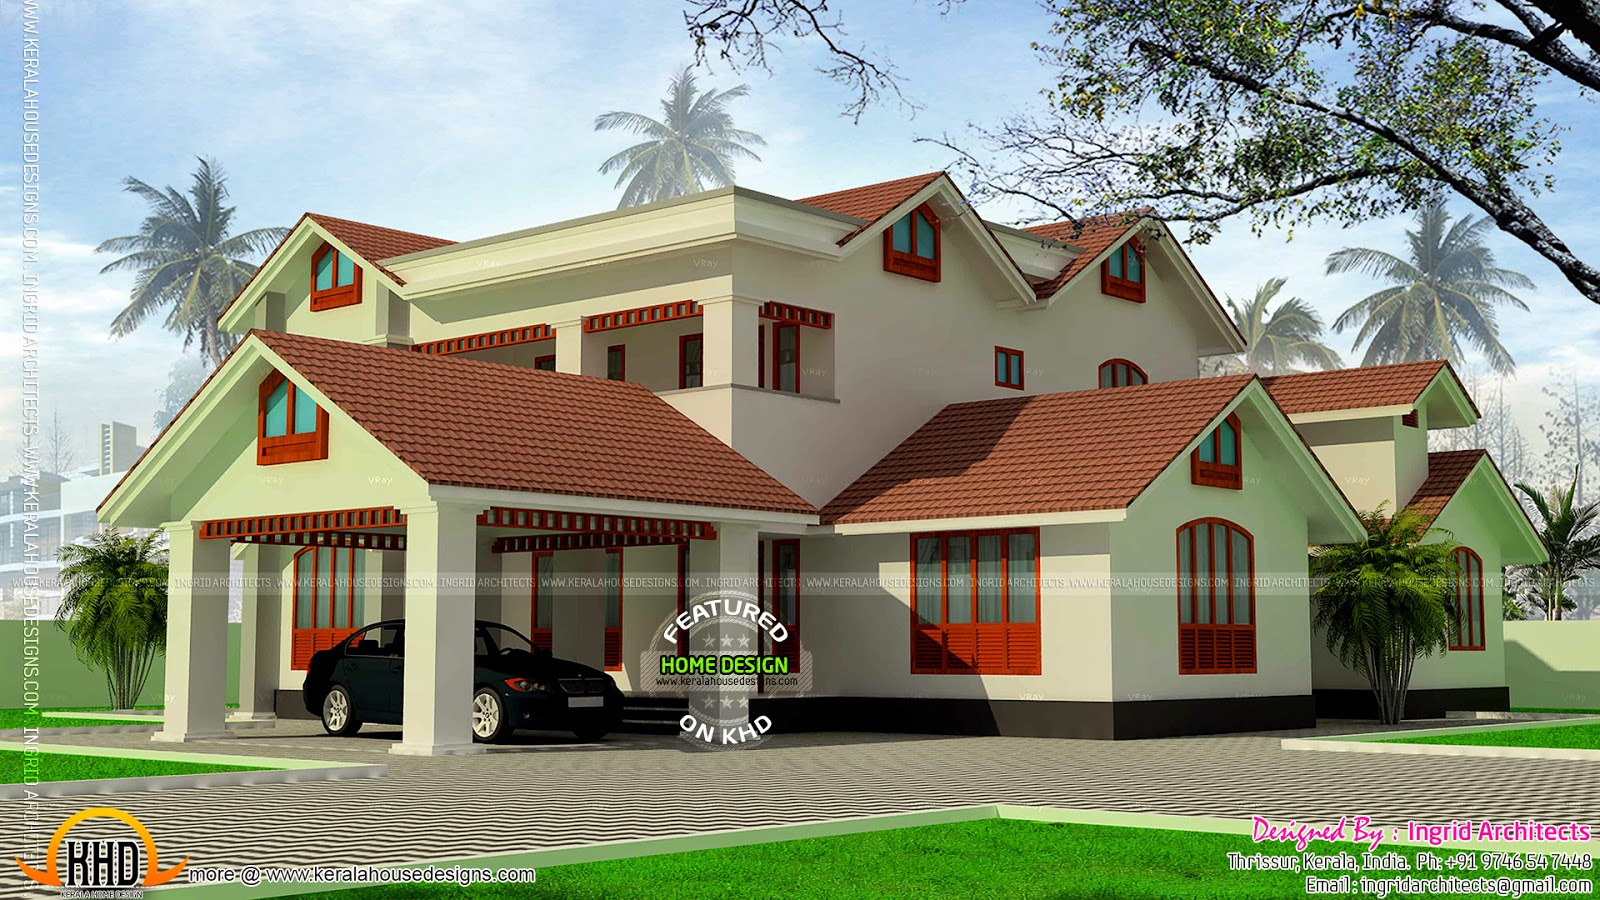 House renovation idea kerala home design and floor plans Old home renovation in kerala